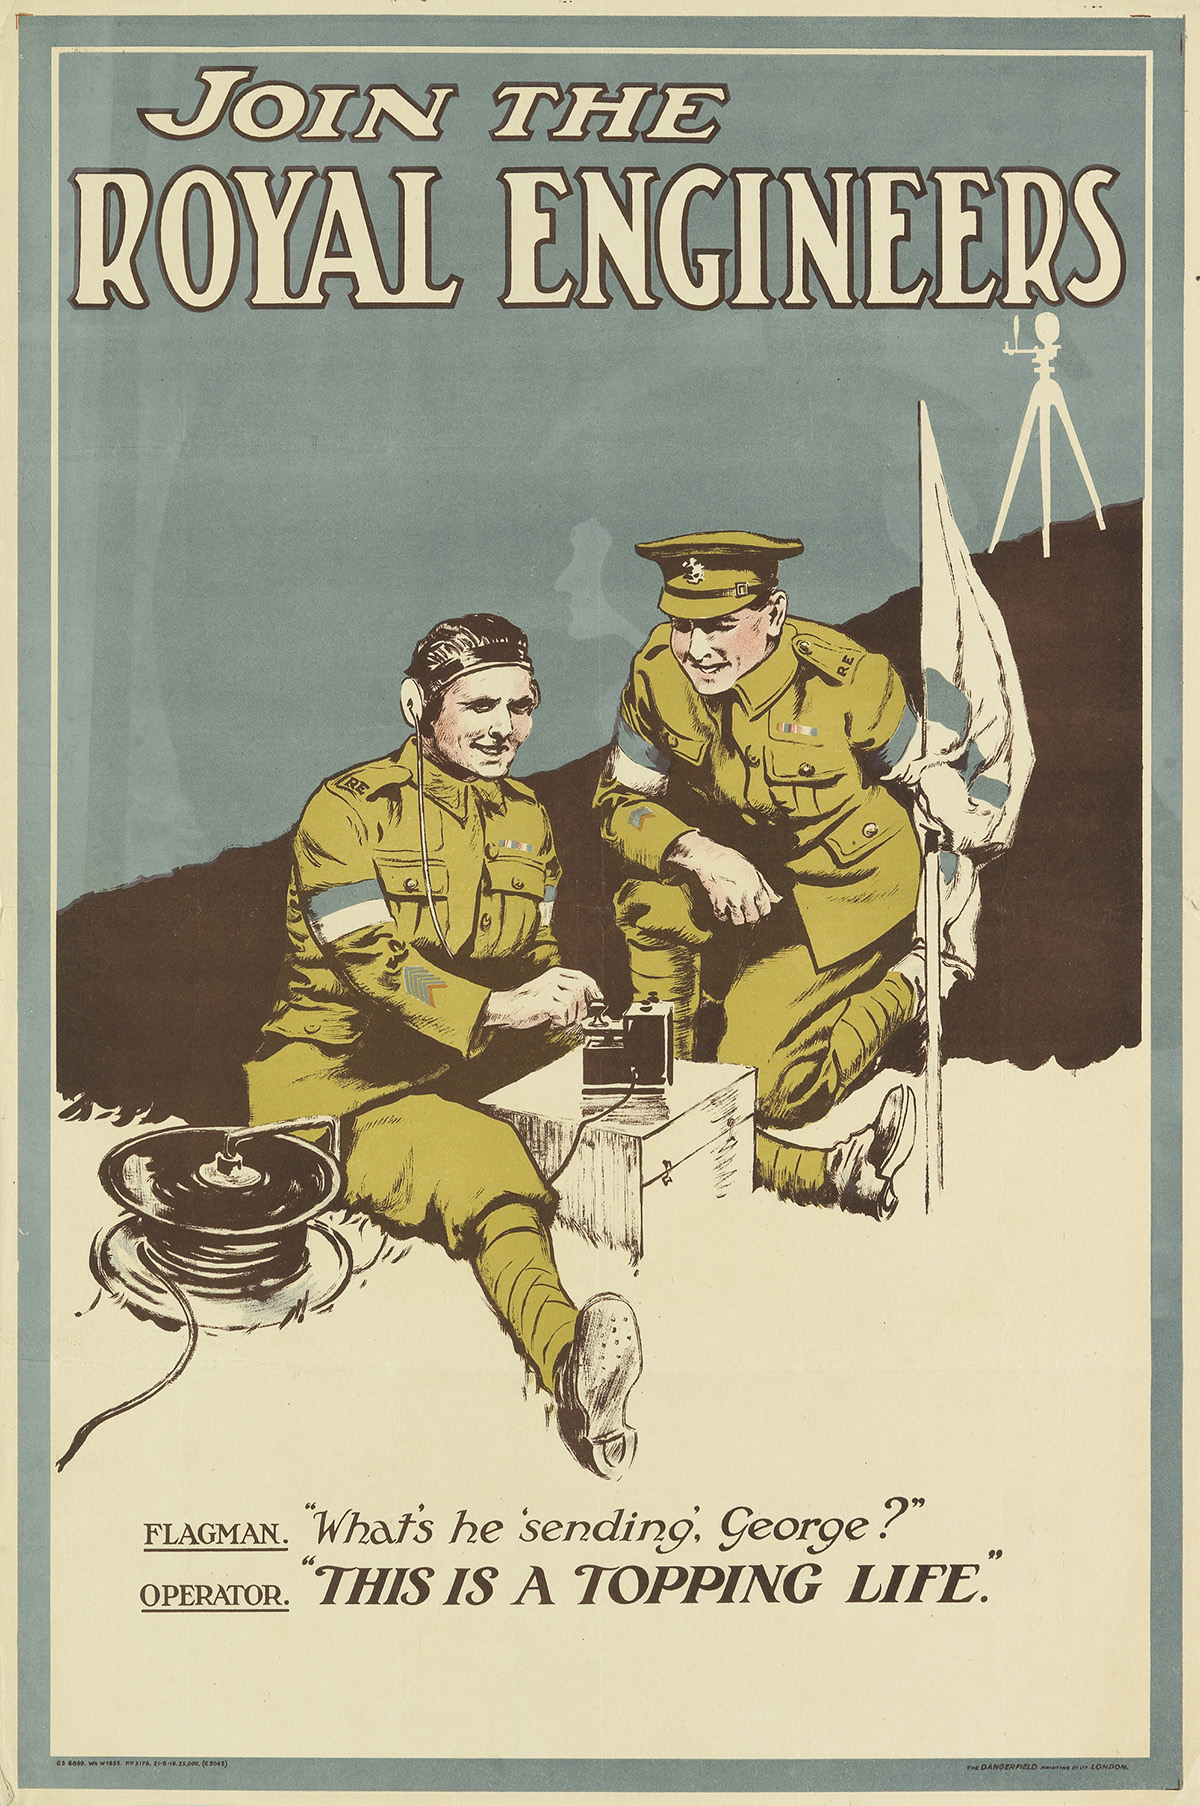 DESIGNER UNKNOWN. JOIN THE ROYAL ENGINEERS. 1919. 30x20 inches, 76x50 cm. The Dangerfield Printing Co. Ltd., London.